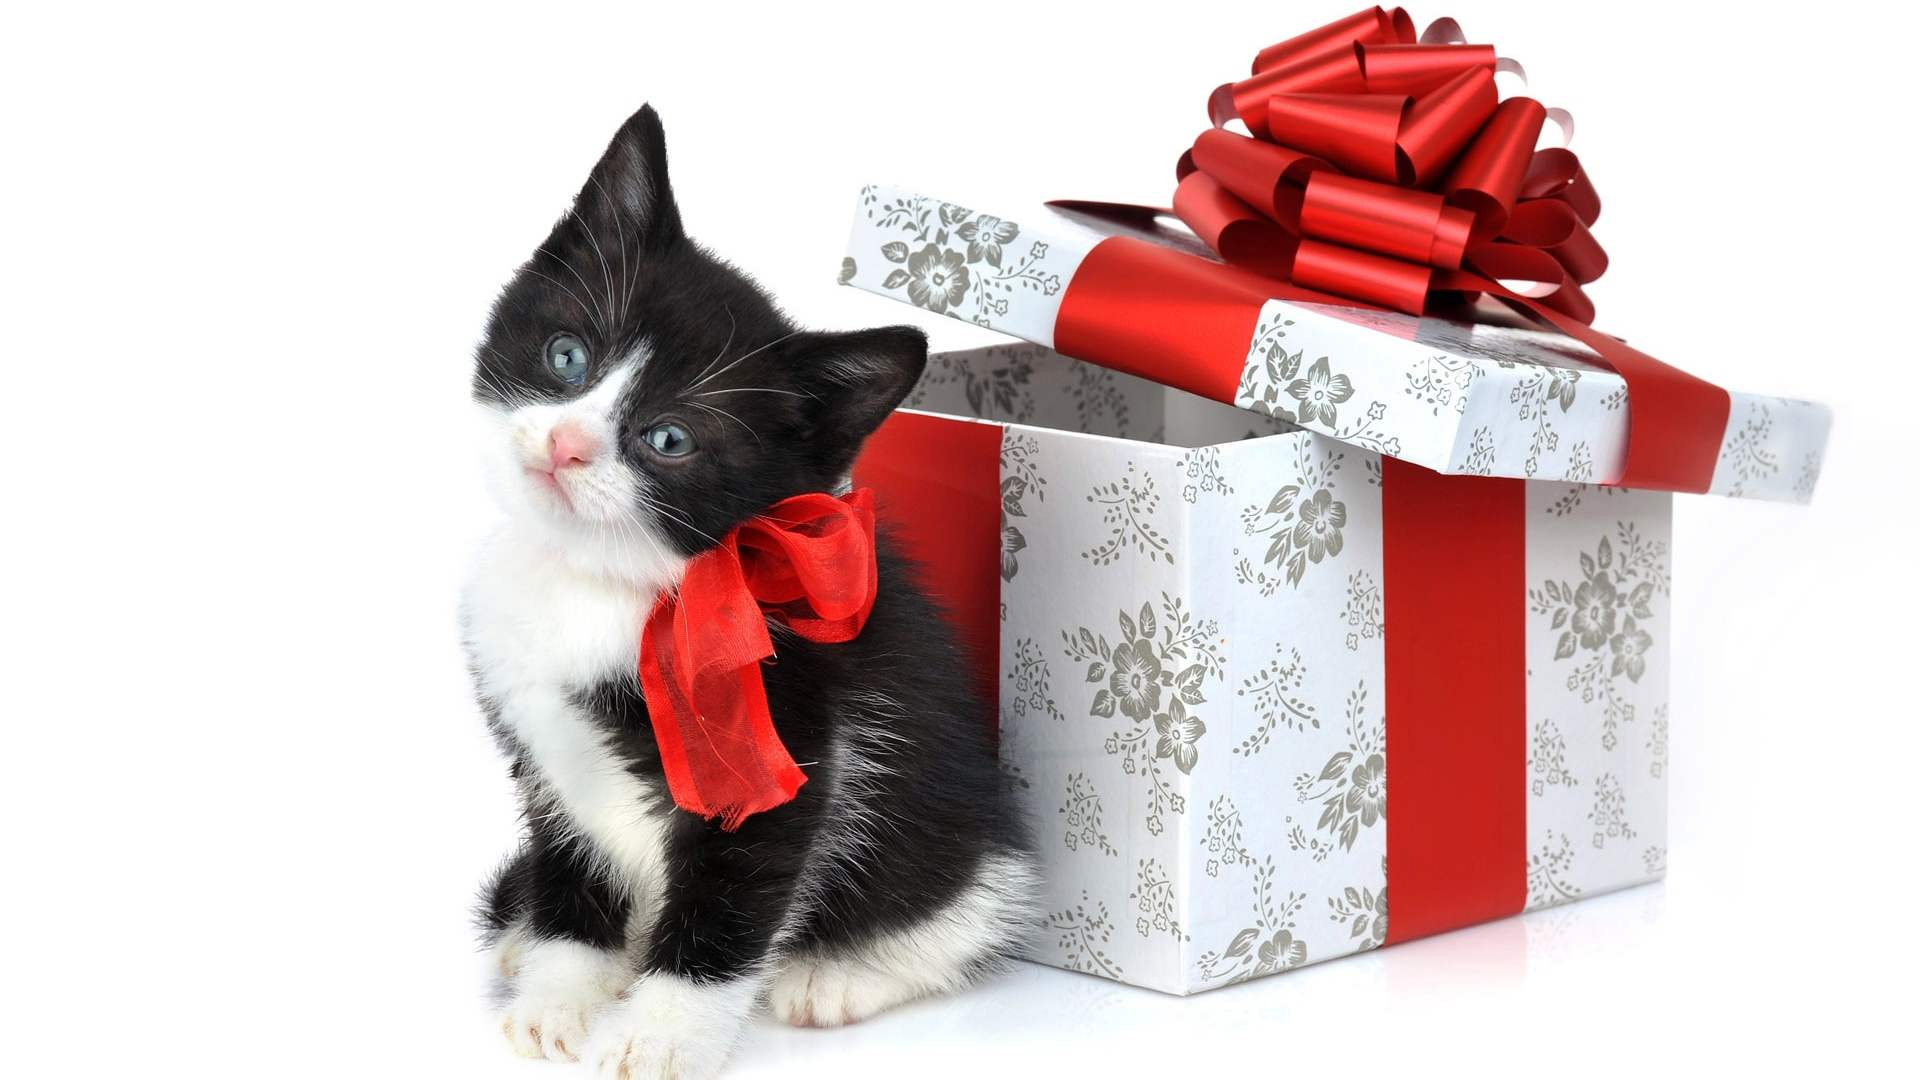 Christmas Kitten Wallpaper - Viewing Gallery